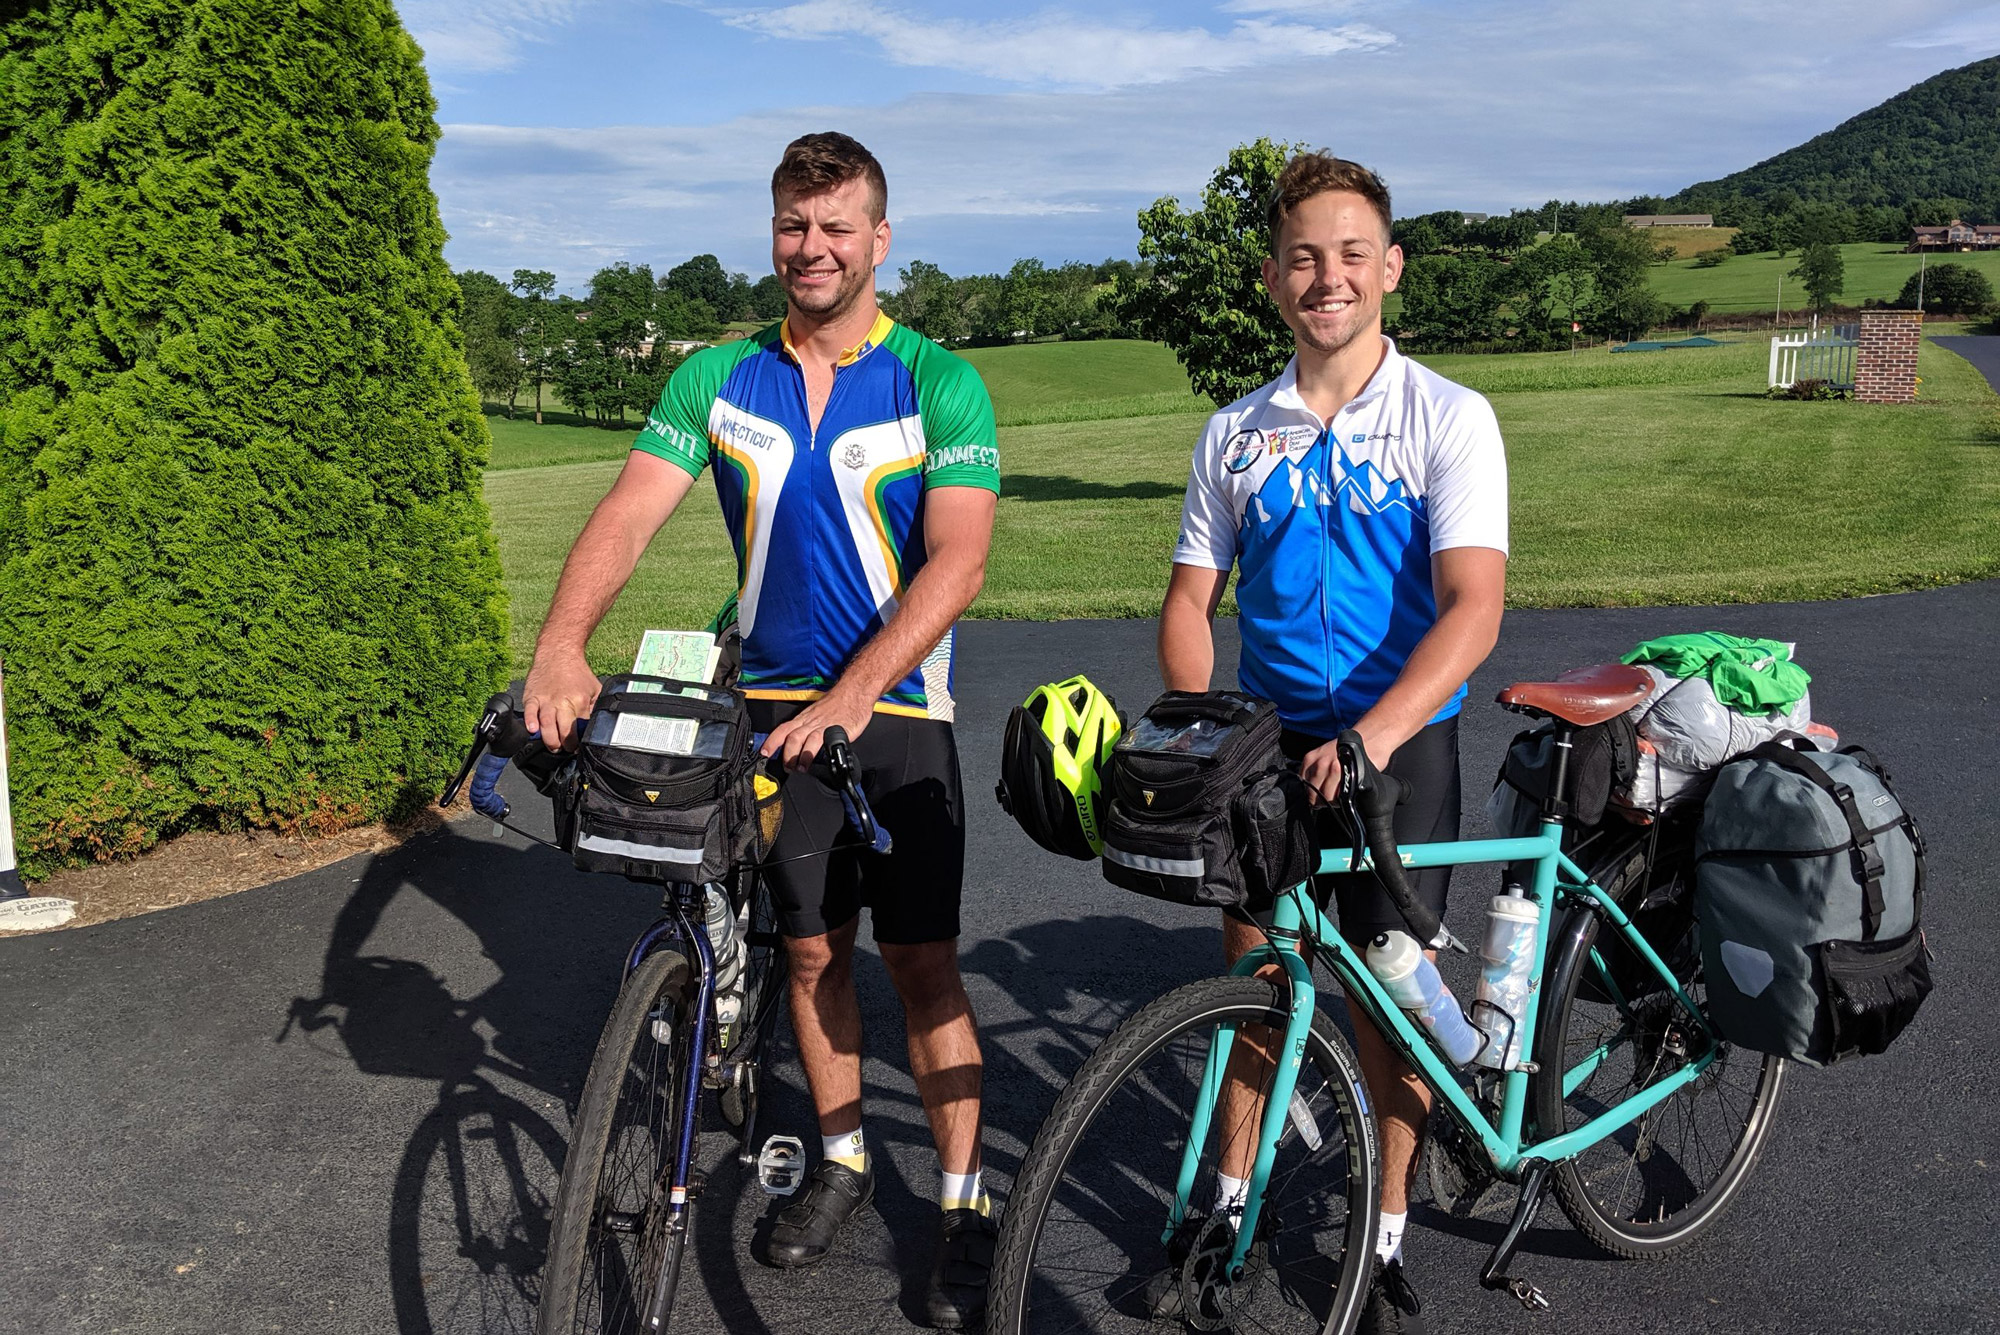 Albert Blake (left) and Conrad Baer (Wheelock'19) stand with their bikes